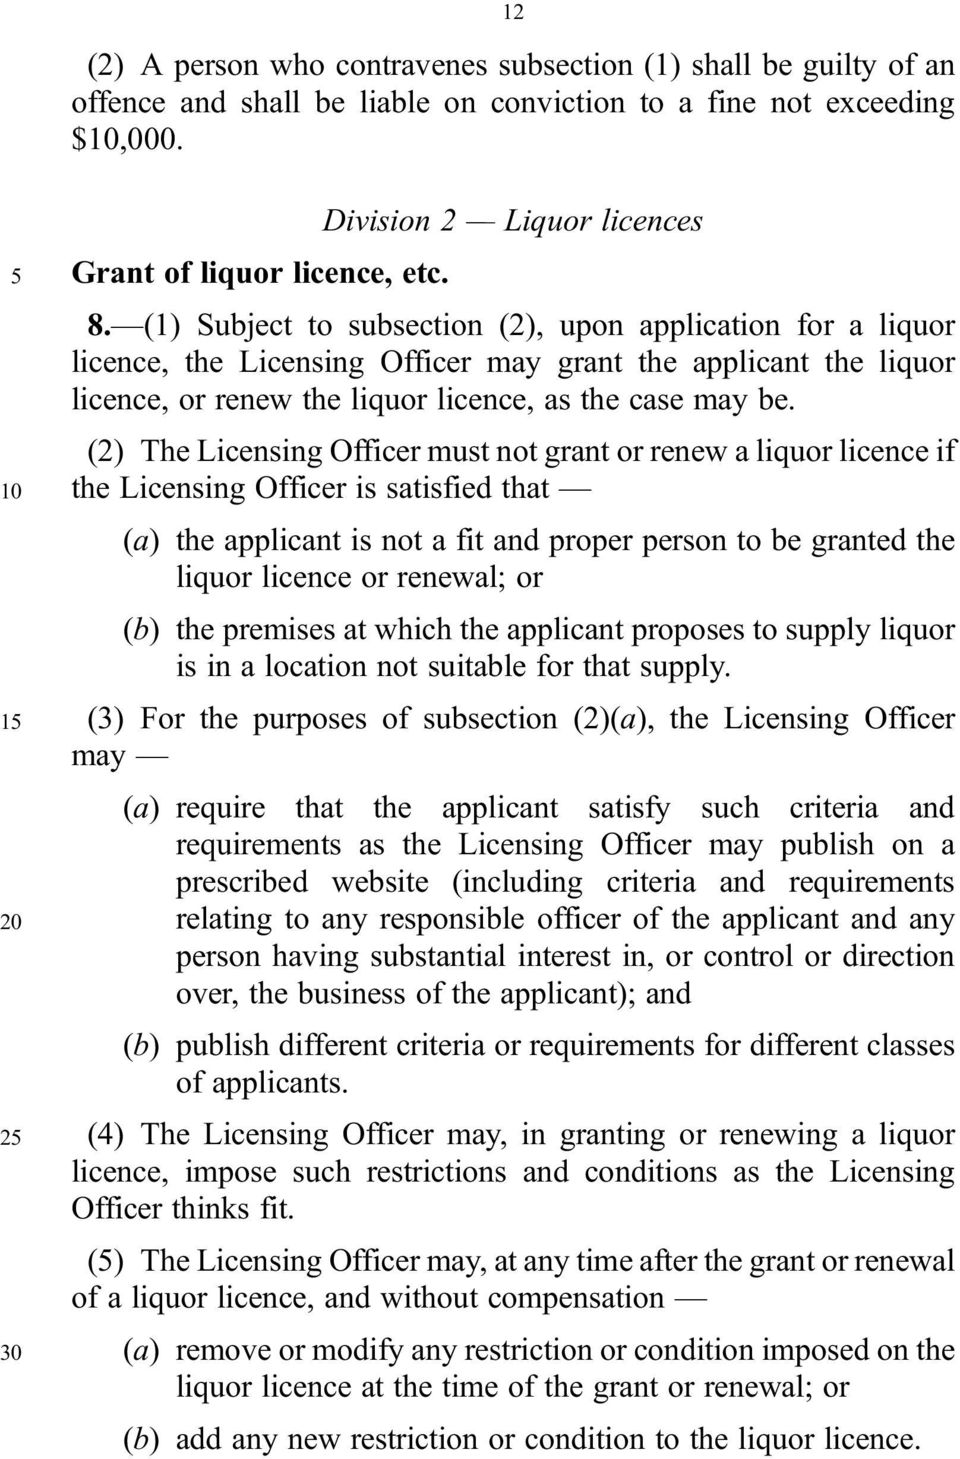 (2) The Licensing Officer must not grant or renew a liquor licence if 10 the Licensing Officer is satisfied that (a) the applicant is not a fit and proper person to be granted the liquor licence or